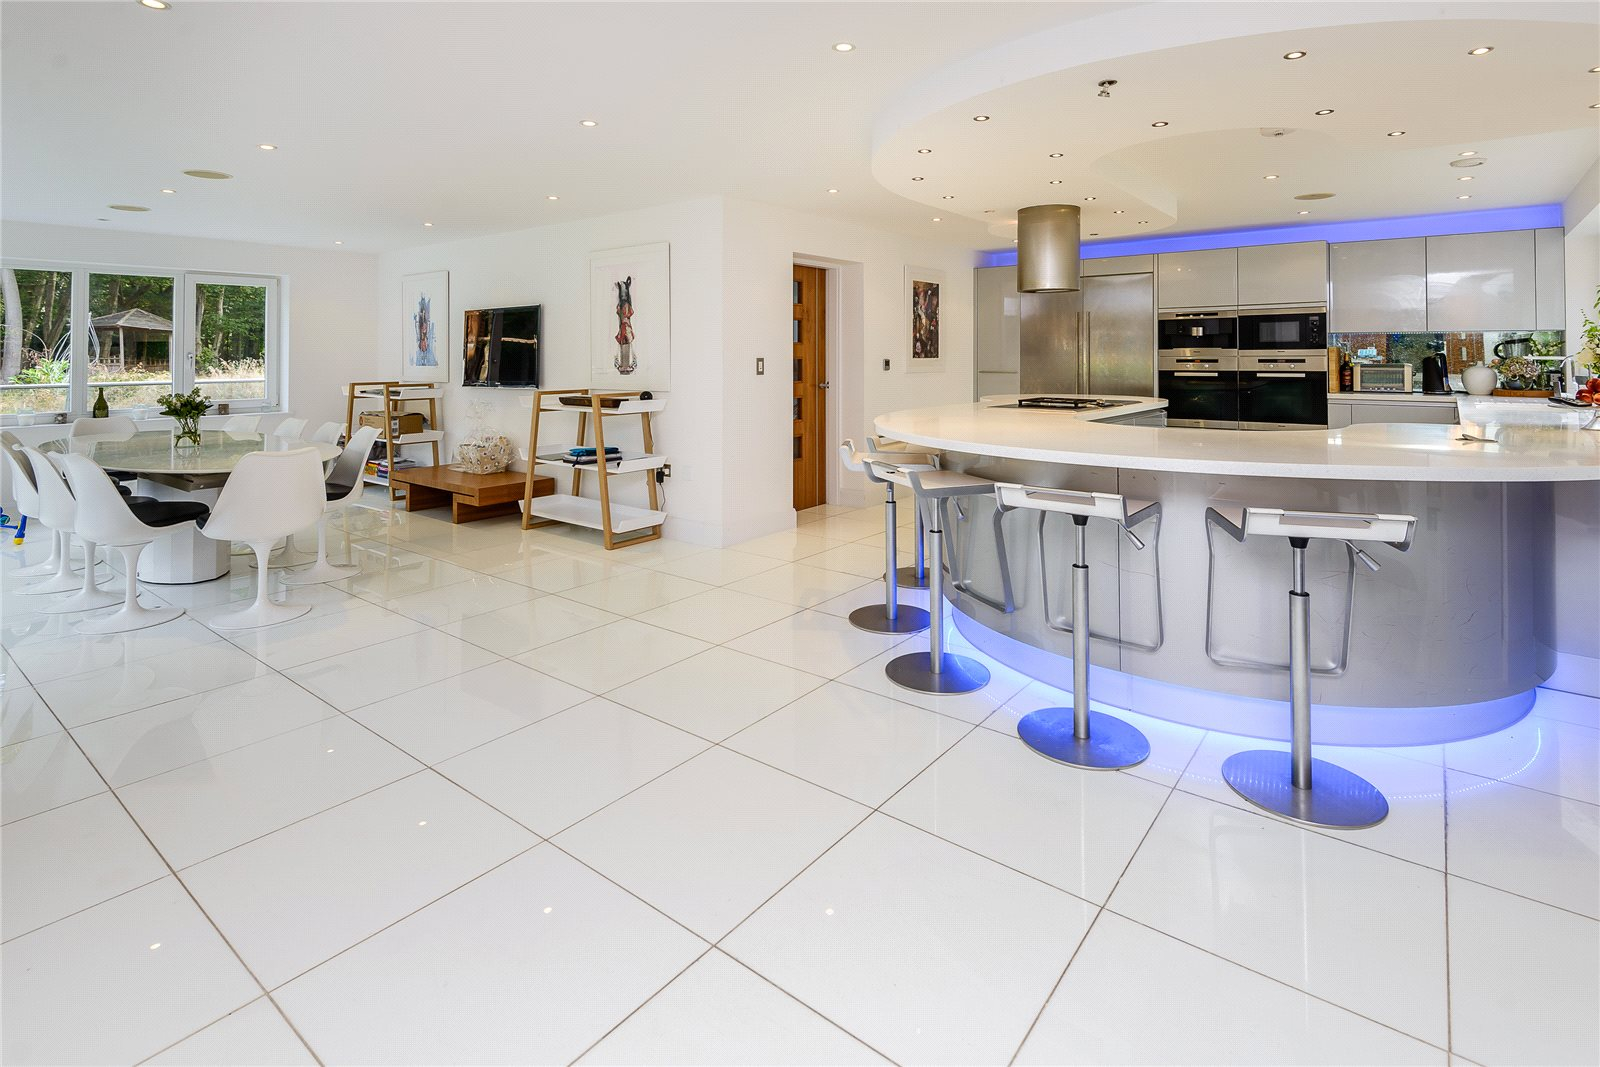 Additional photo for property listing at Rickmans Lane, Stoke Poges, Buckinghamshire, SL2 Stoke Poges, England